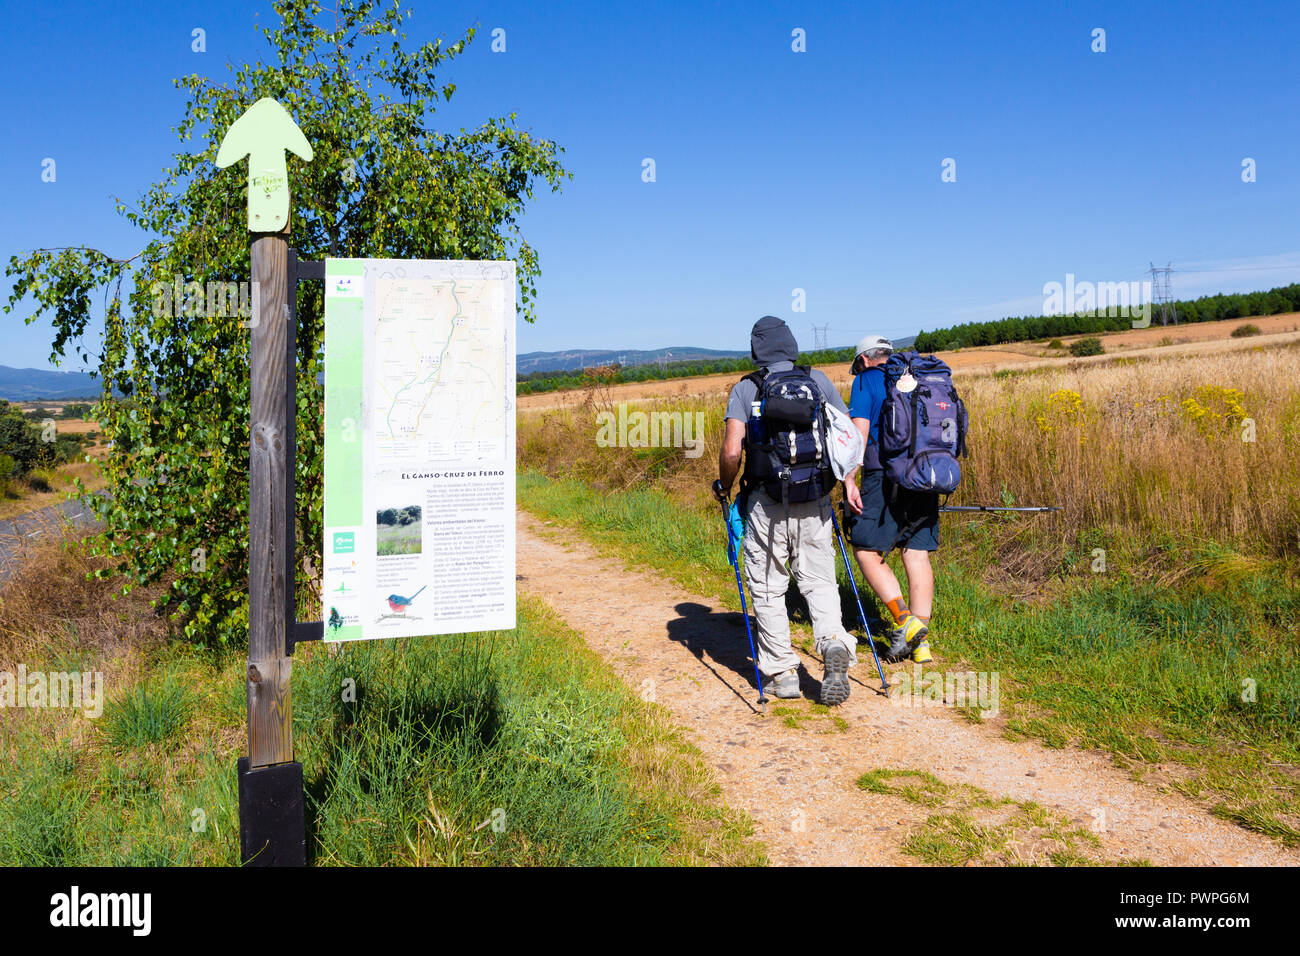 CAMINO DE SANTIAGO, SPAIN - AUGUST 10, 2018 - Pilgrims in El Ganso along the way of St.James, in the spanish meseta - Stock Image